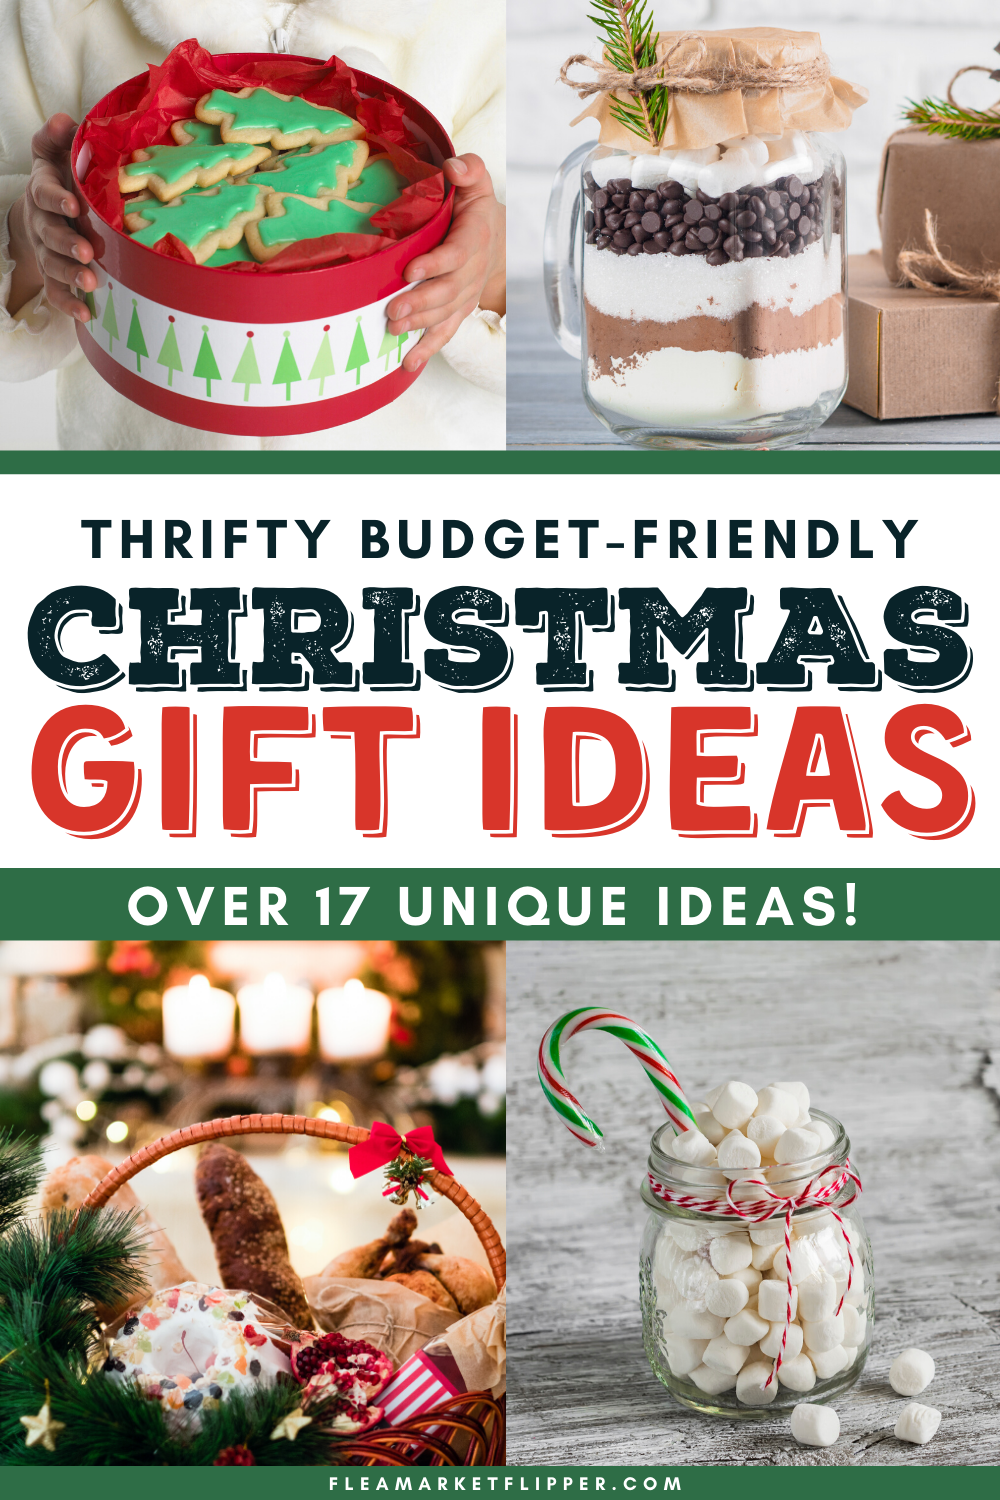 Thrifty Christmas Gifts On A Budget In 2020 Budget Friendly Christmas Gifts Frugal Christmas Budget Friendly Gift